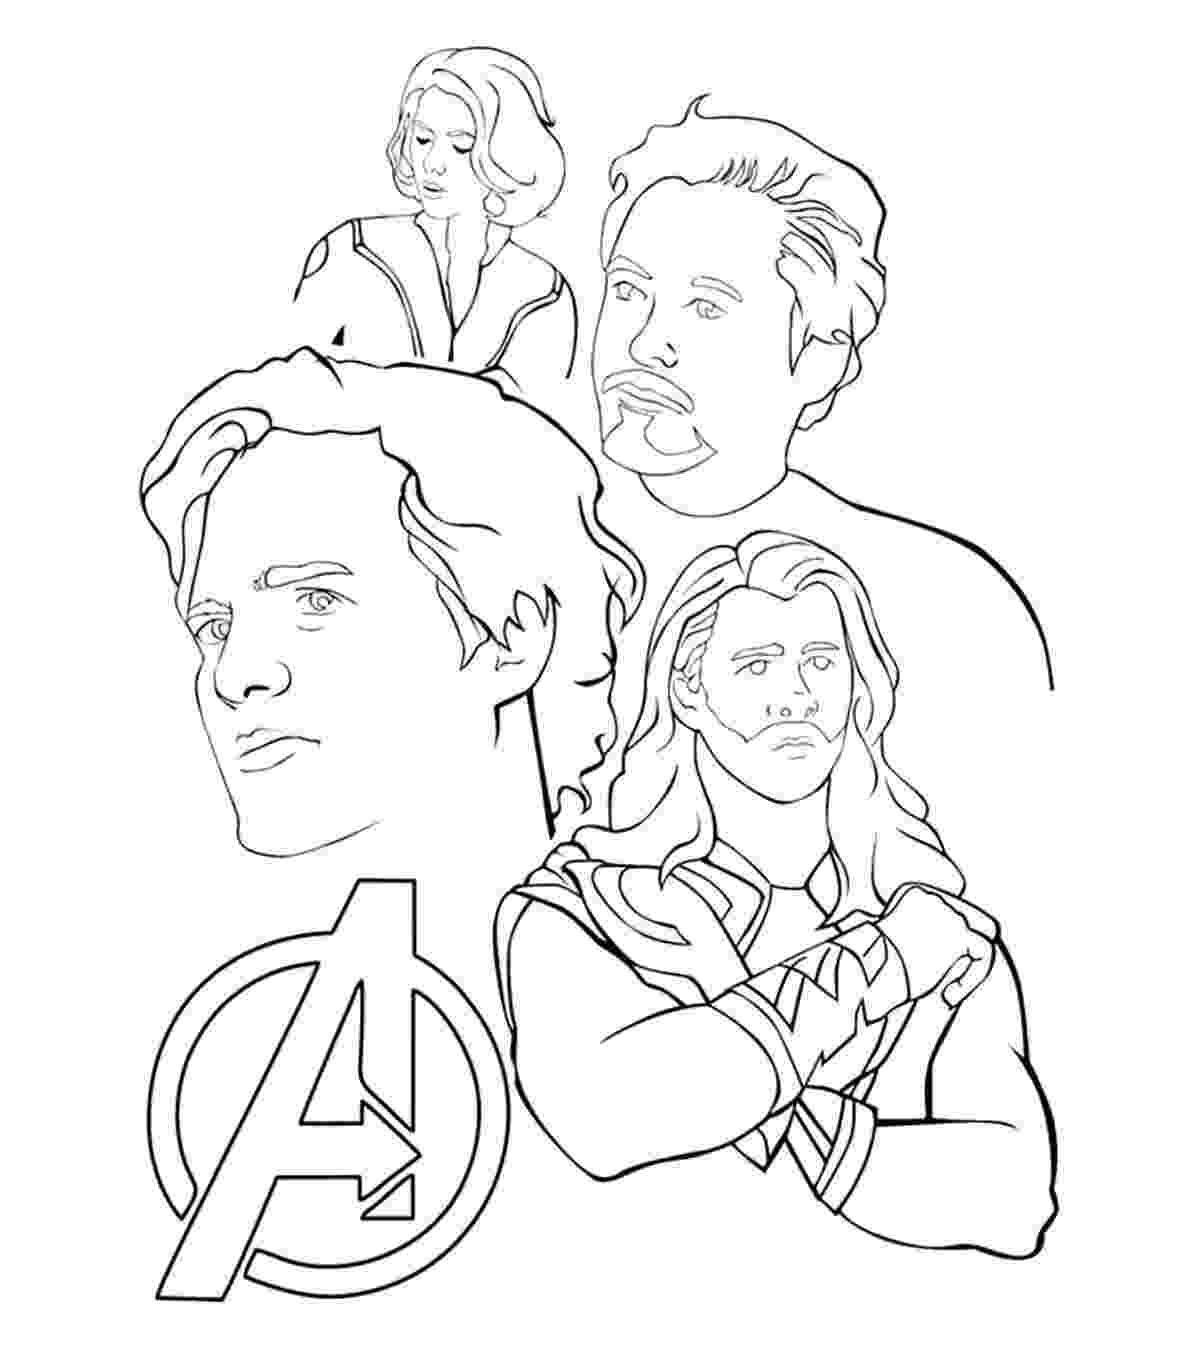 avengers colouring pages craftoholic ultimate avengers coloring pages avengers colouring pages